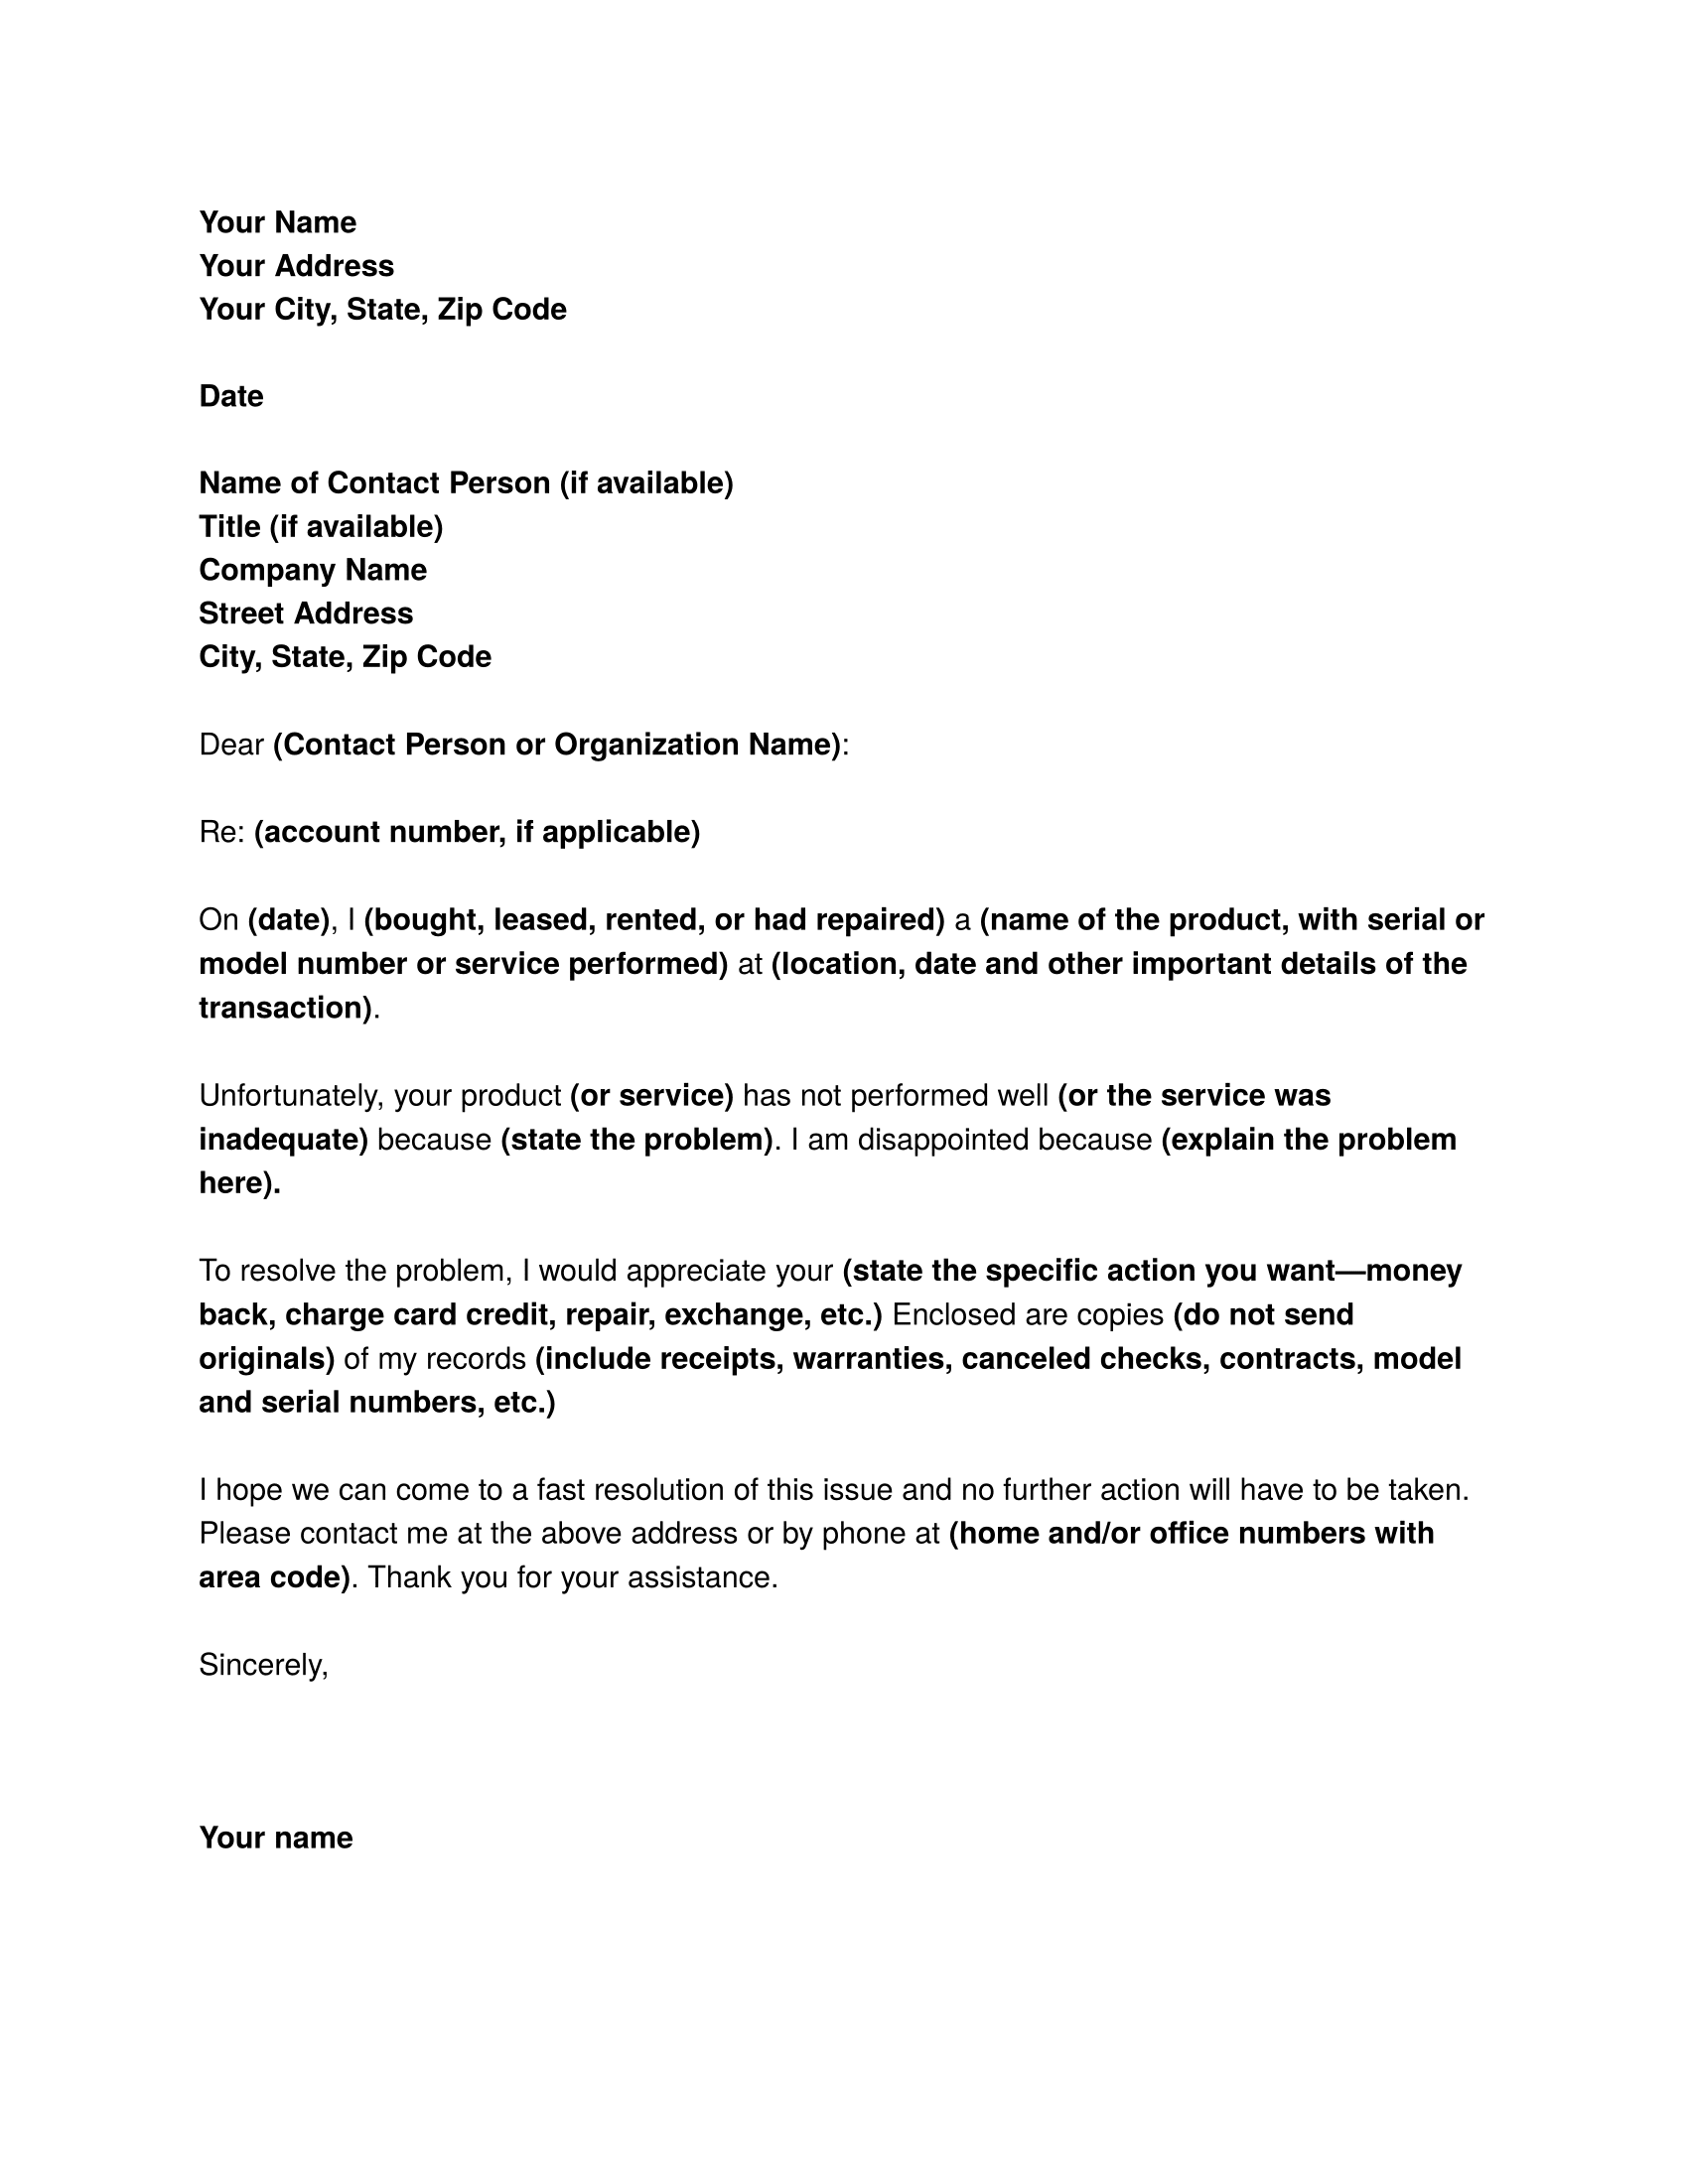 complaint letter sample business letter templates letter of complaint for product or service